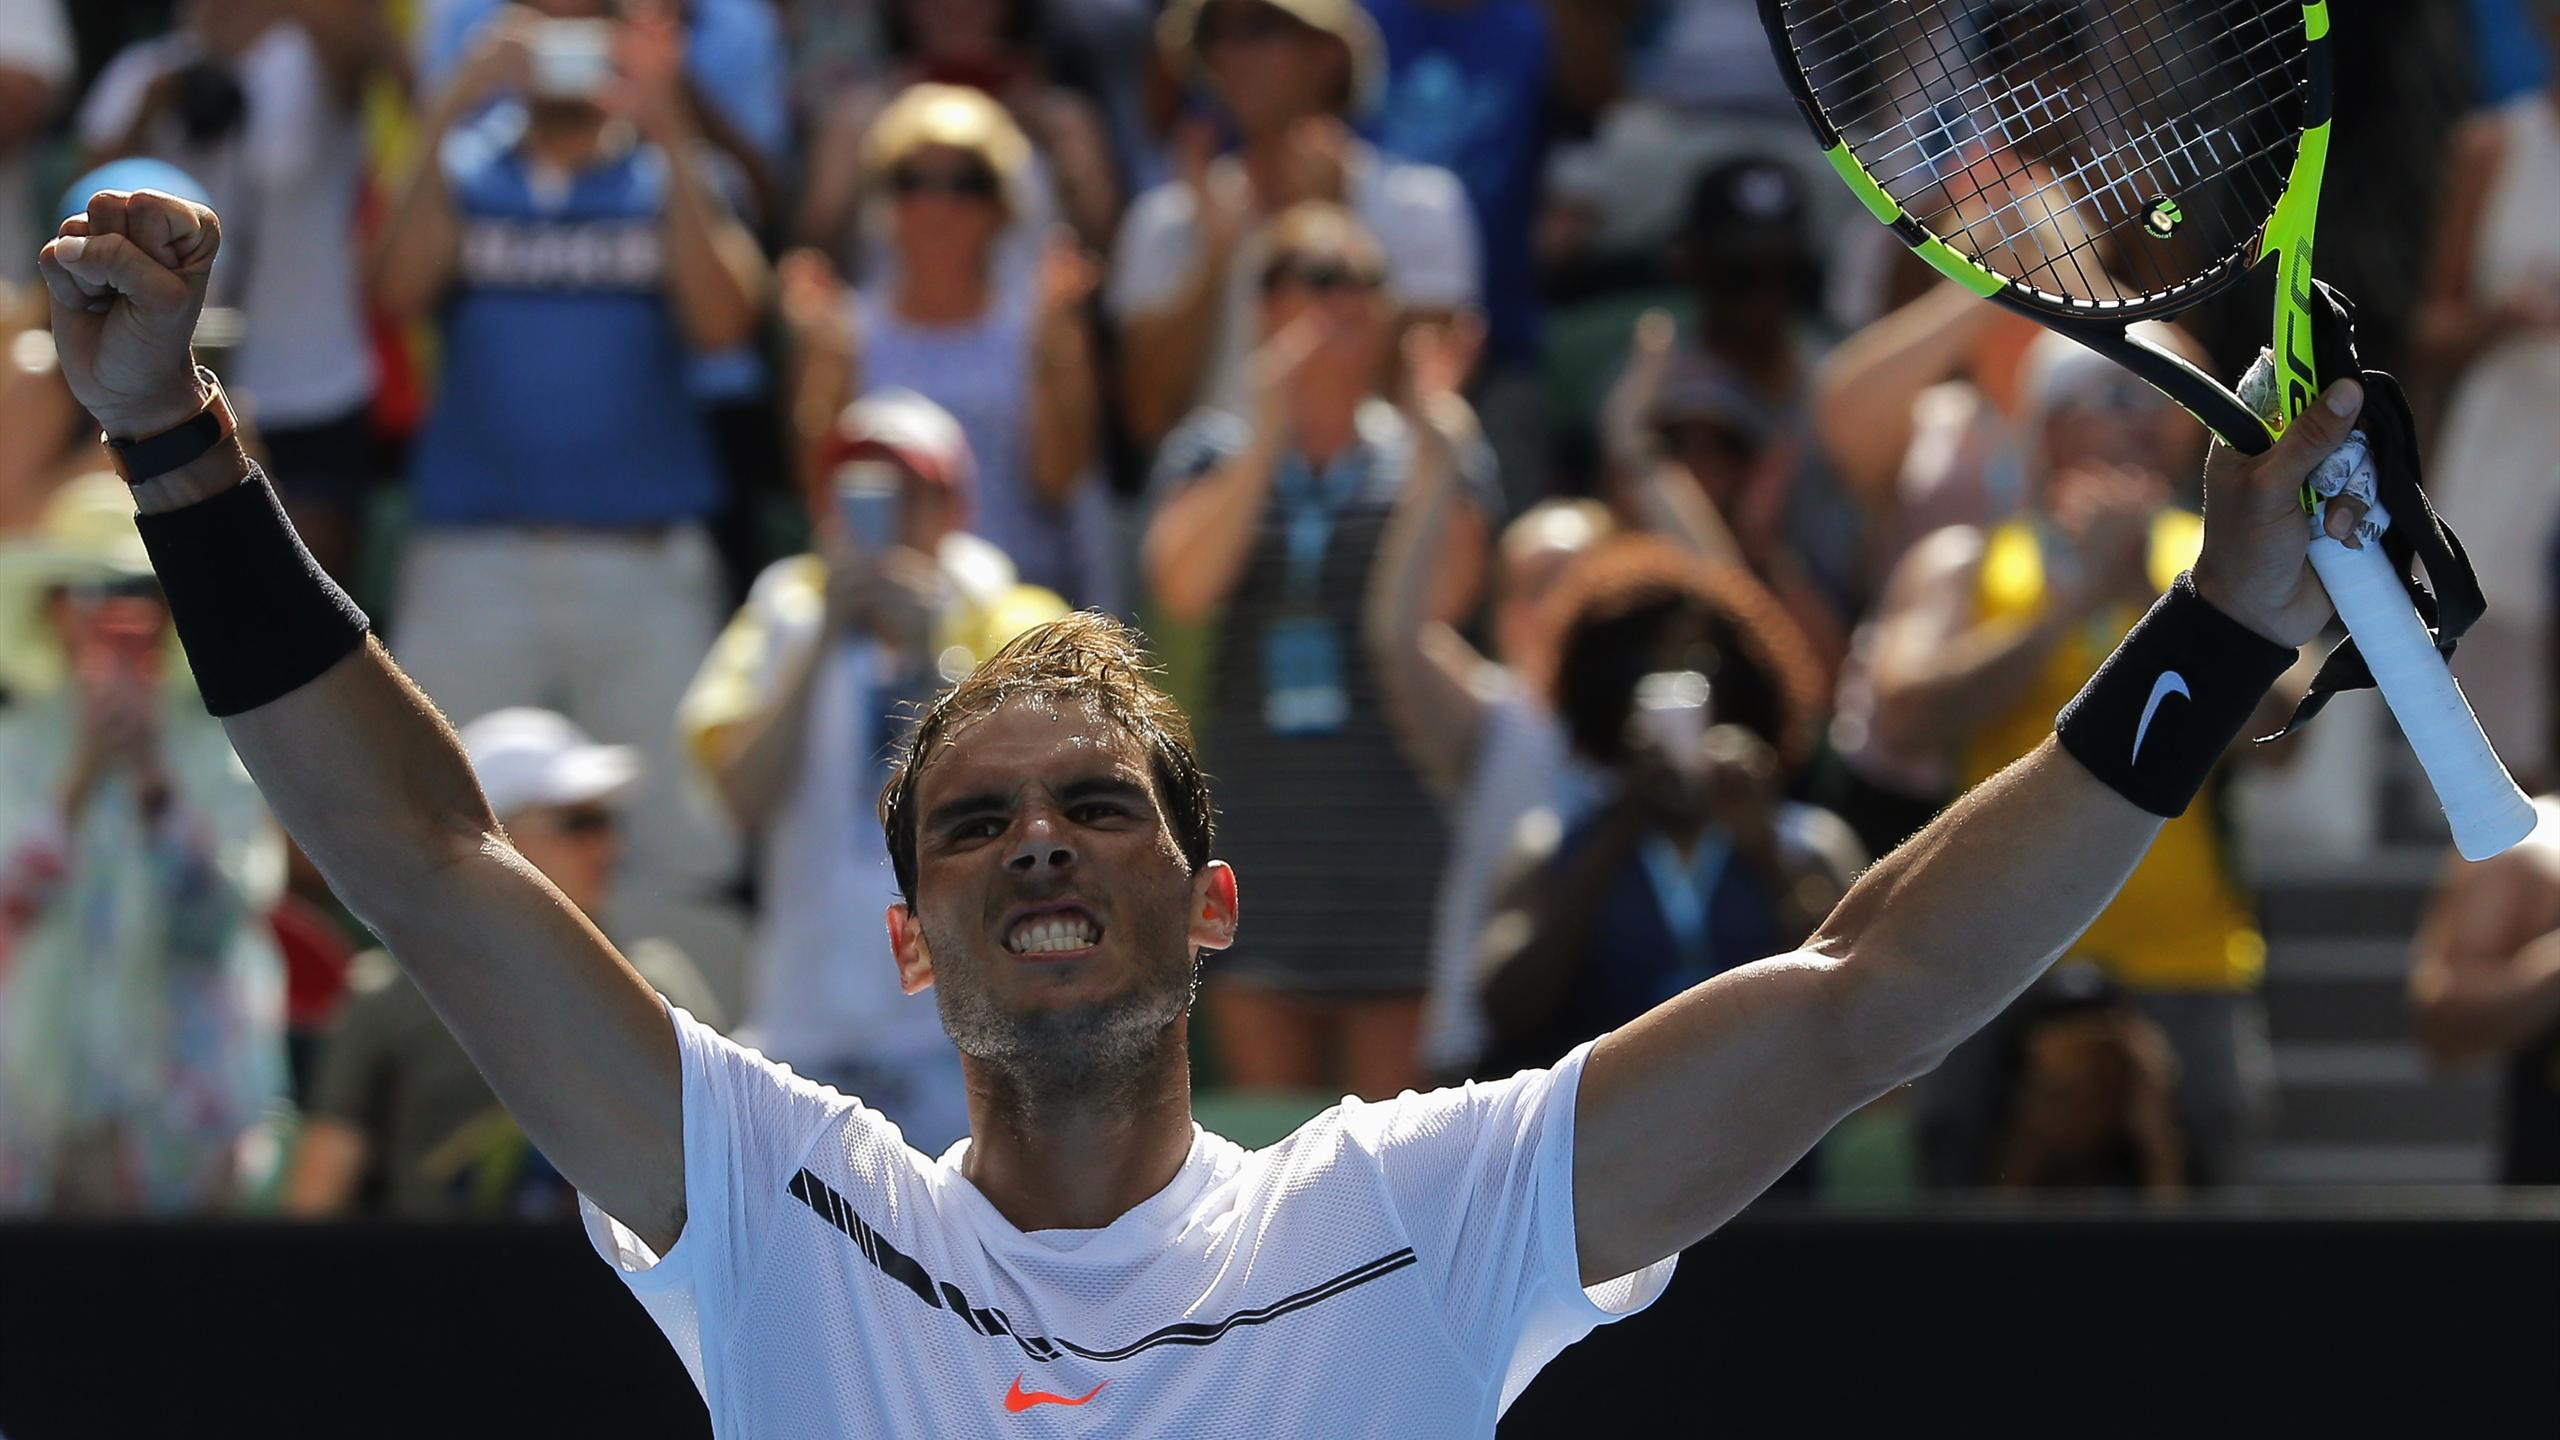 Spain's Rafael Nadal celebrates after winning his Men's singles first round match against Germany's Florian Mayer